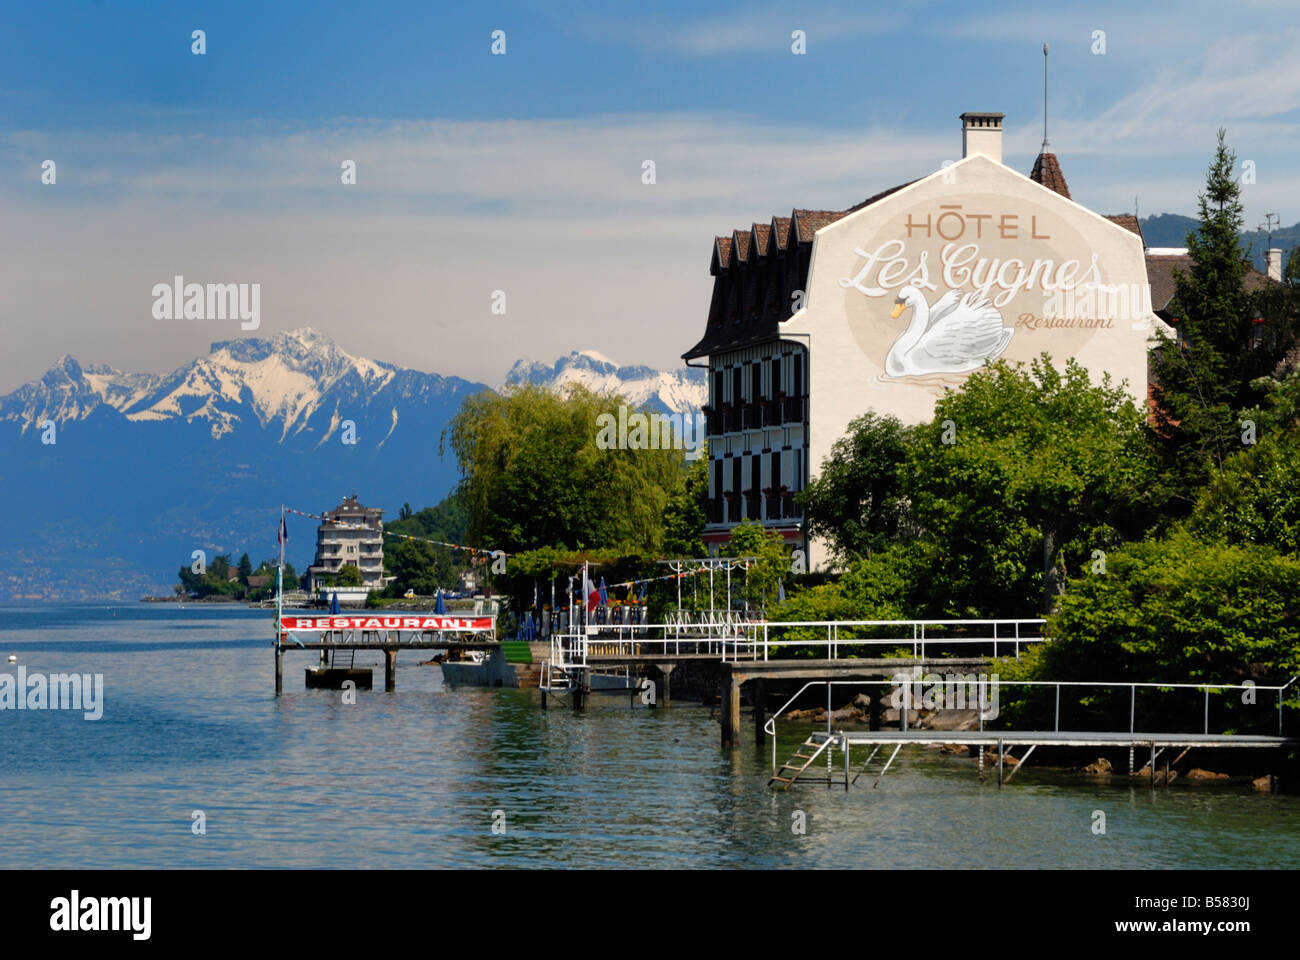 lakeside hotel lac leman lake geneva evian les bains stock photo 20461634 alamy. Black Bedroom Furniture Sets. Home Design Ideas